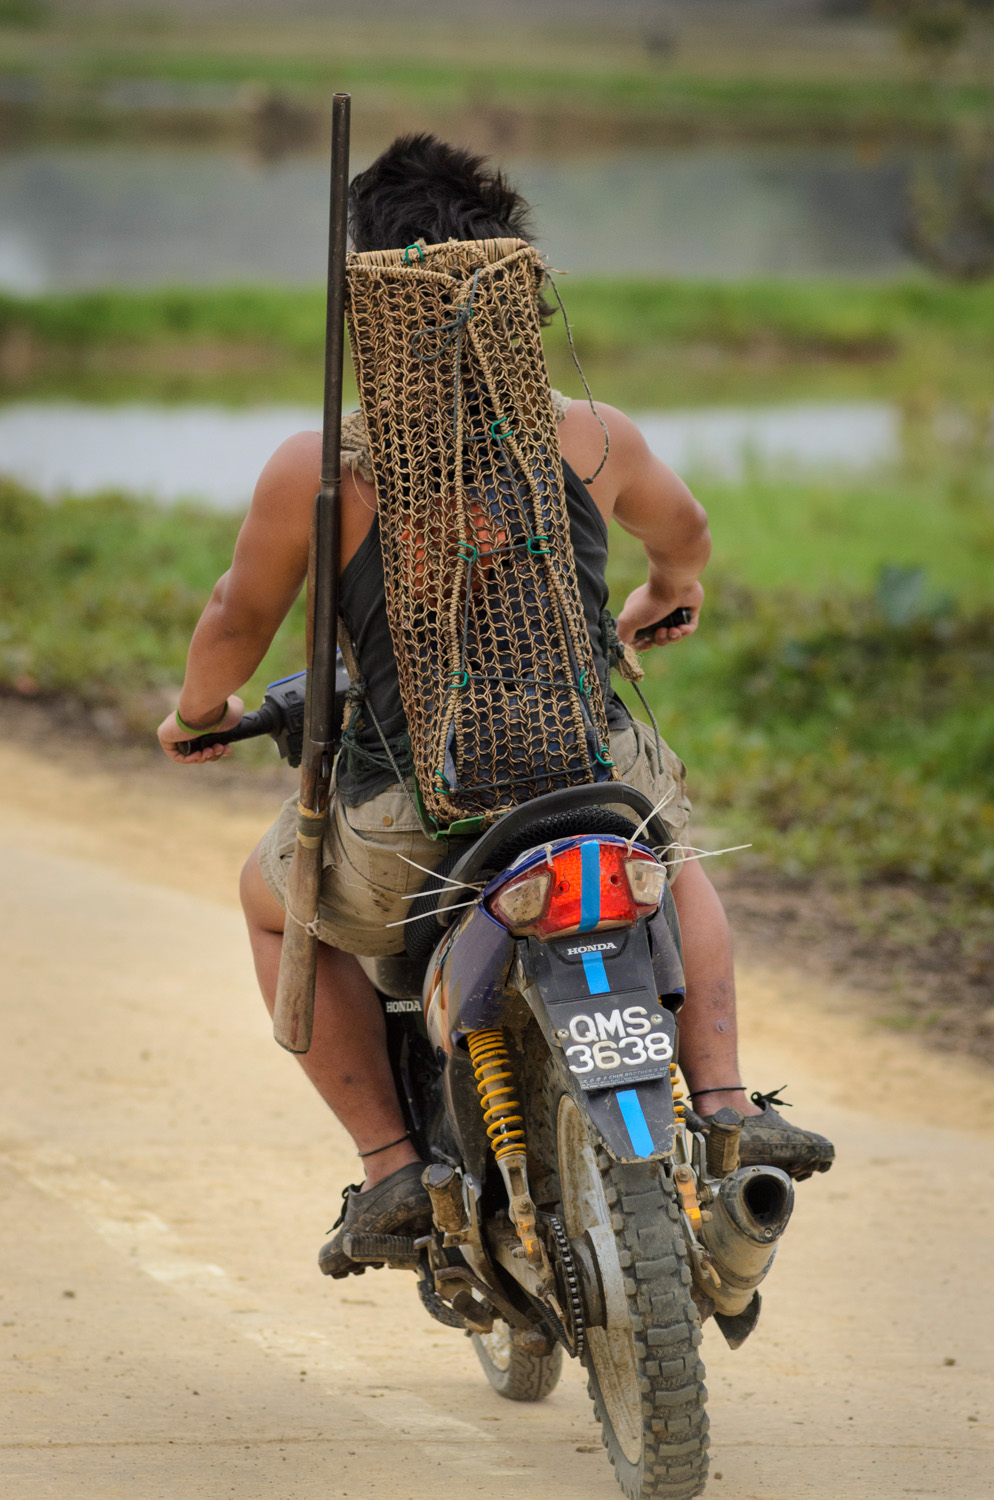 A young man on a motorcycle makes his way to the jungle with a hunting shotgun and a traditional Kelabit woven backpack to carry whatever he catches, in Bario, Sarawak, Malaysia.